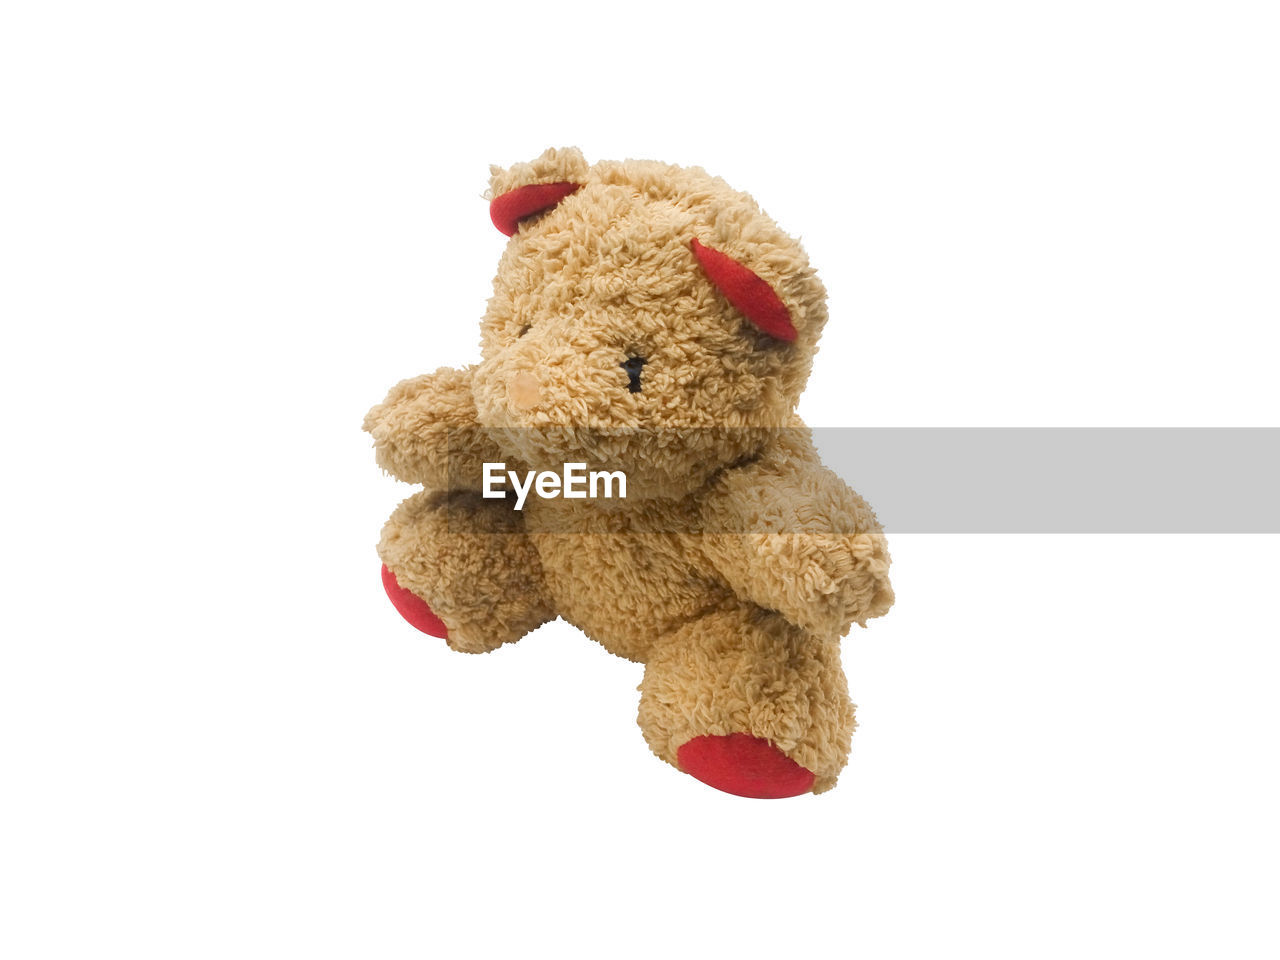 teddy bear, toy, stuffed toy, studio shot, white background, indoors, animal representation, childhood, cut out, still life, single object, close-up, representation, copy space, toy animal, red, softness, healthcare and medicine, brown, innocence